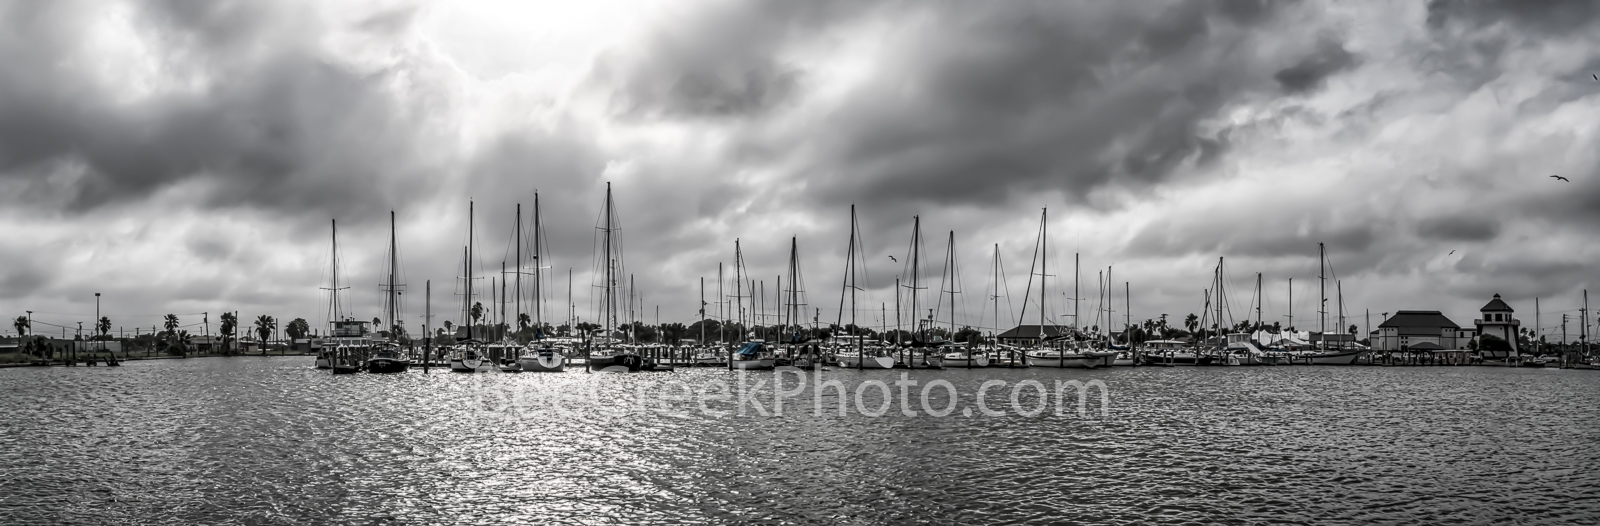 Moody Skies Over Marina B W Panorama - The marina in Rockport Texas with moody cloudy skies in black and white panorama. We capture...